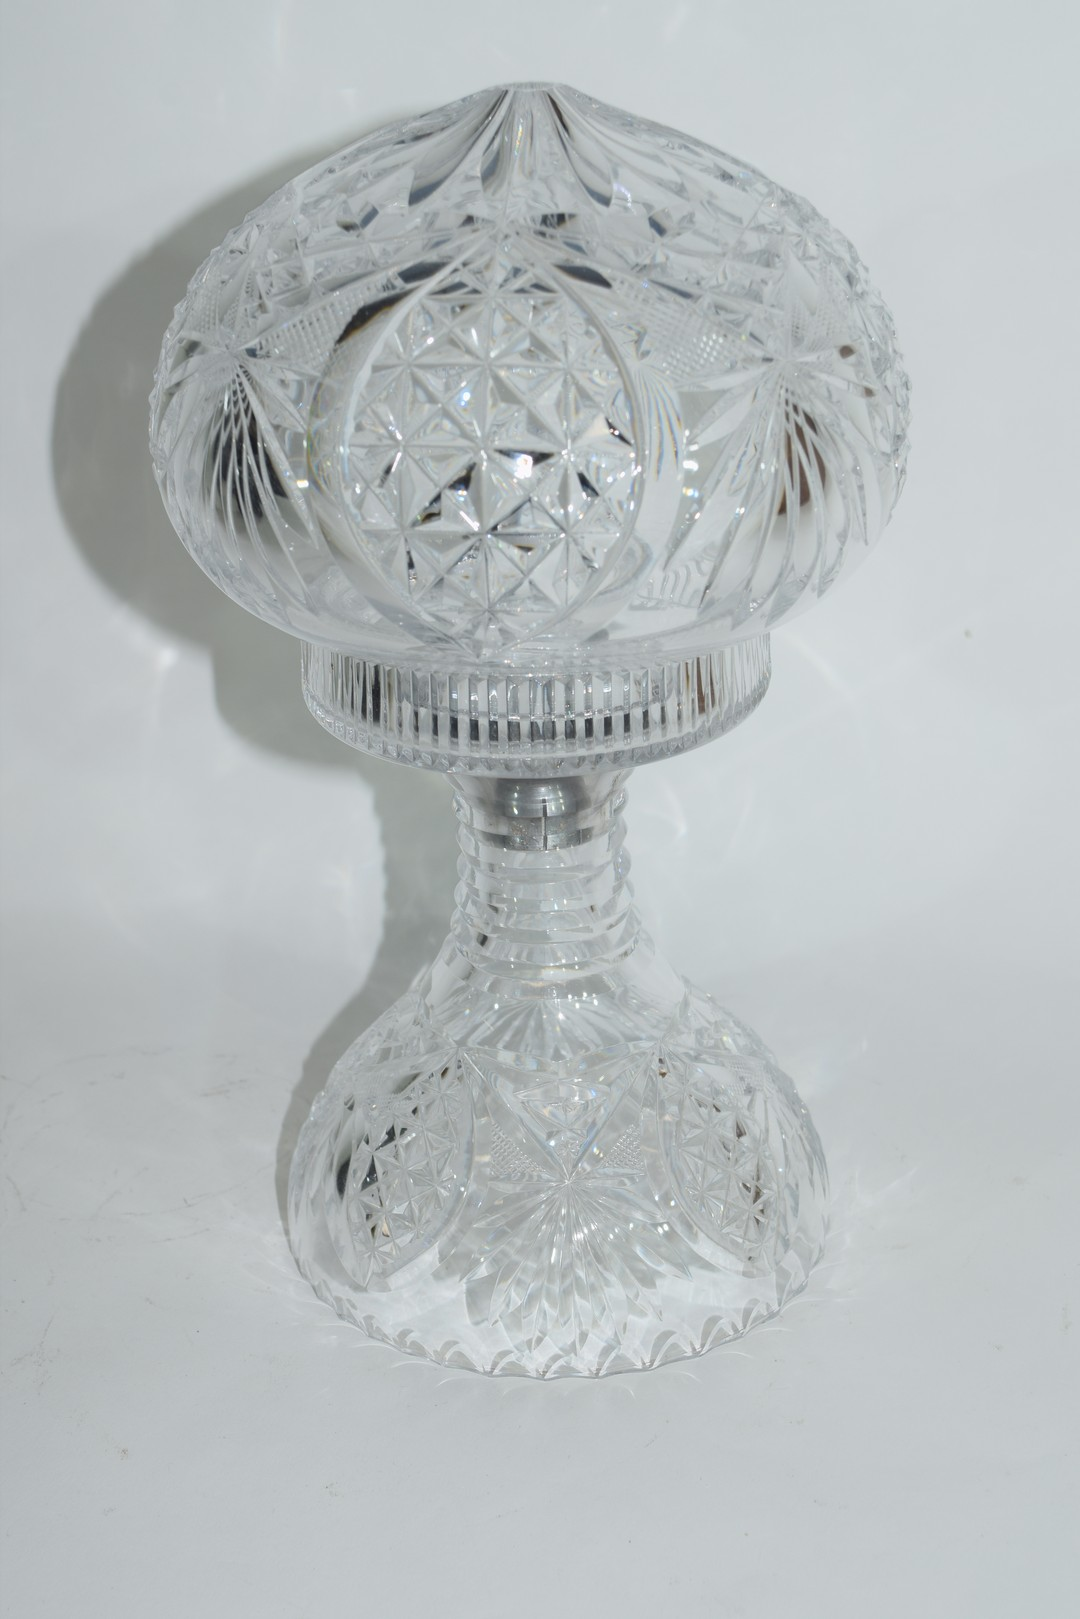 Cut glass lamp and shade - Image 3 of 5